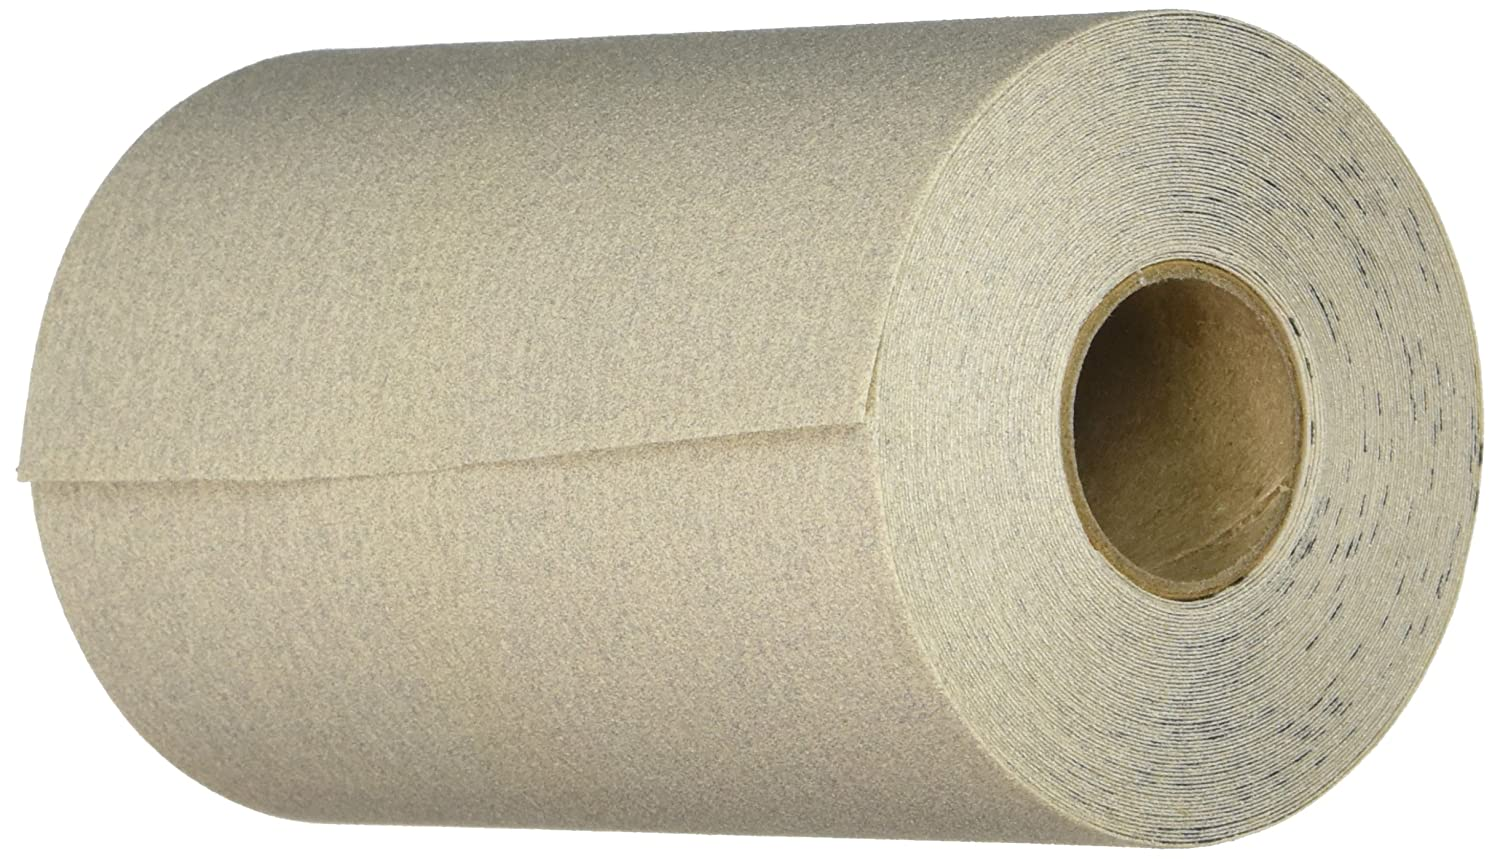 B0000223SL PORTER-CABLE 740001501 4 1/2-Inch x 10yd 150 Grit Adhesive-Backed Sanding Roll 91IYJQ43WNL